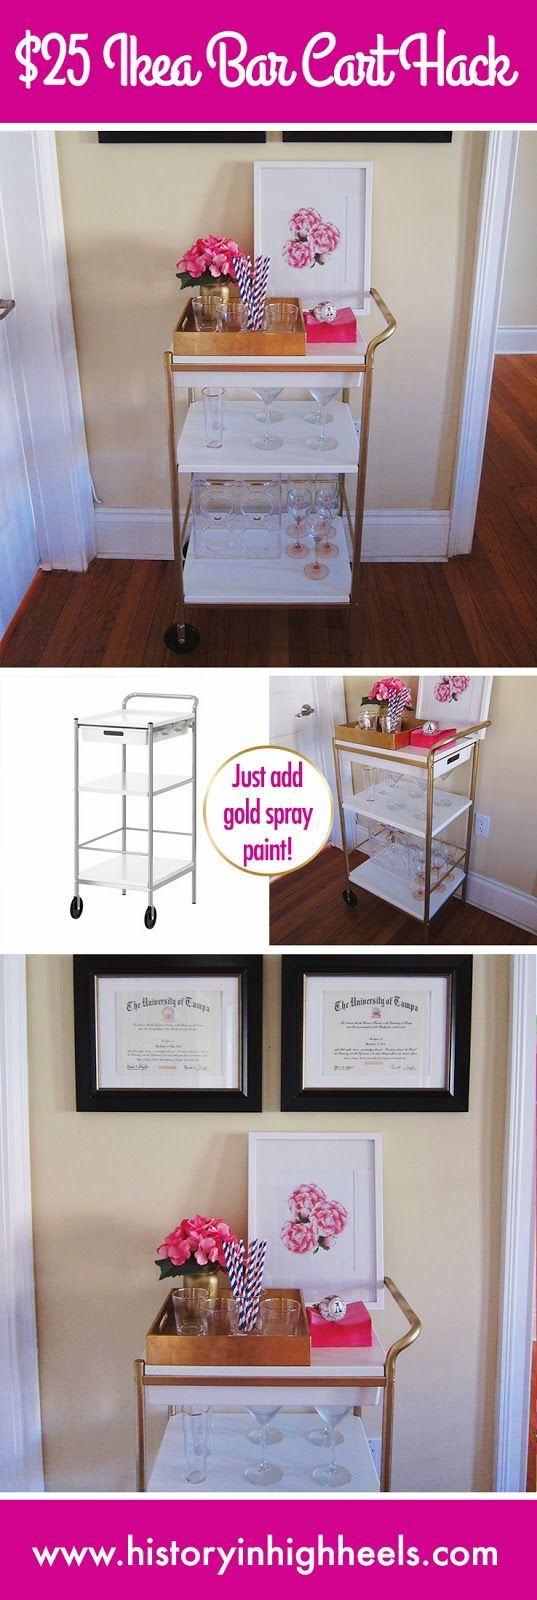 DIY: Ikea Bar Cart Hack I have the cart already. Don't necessarily want to do the gold but like it as a bar cart!